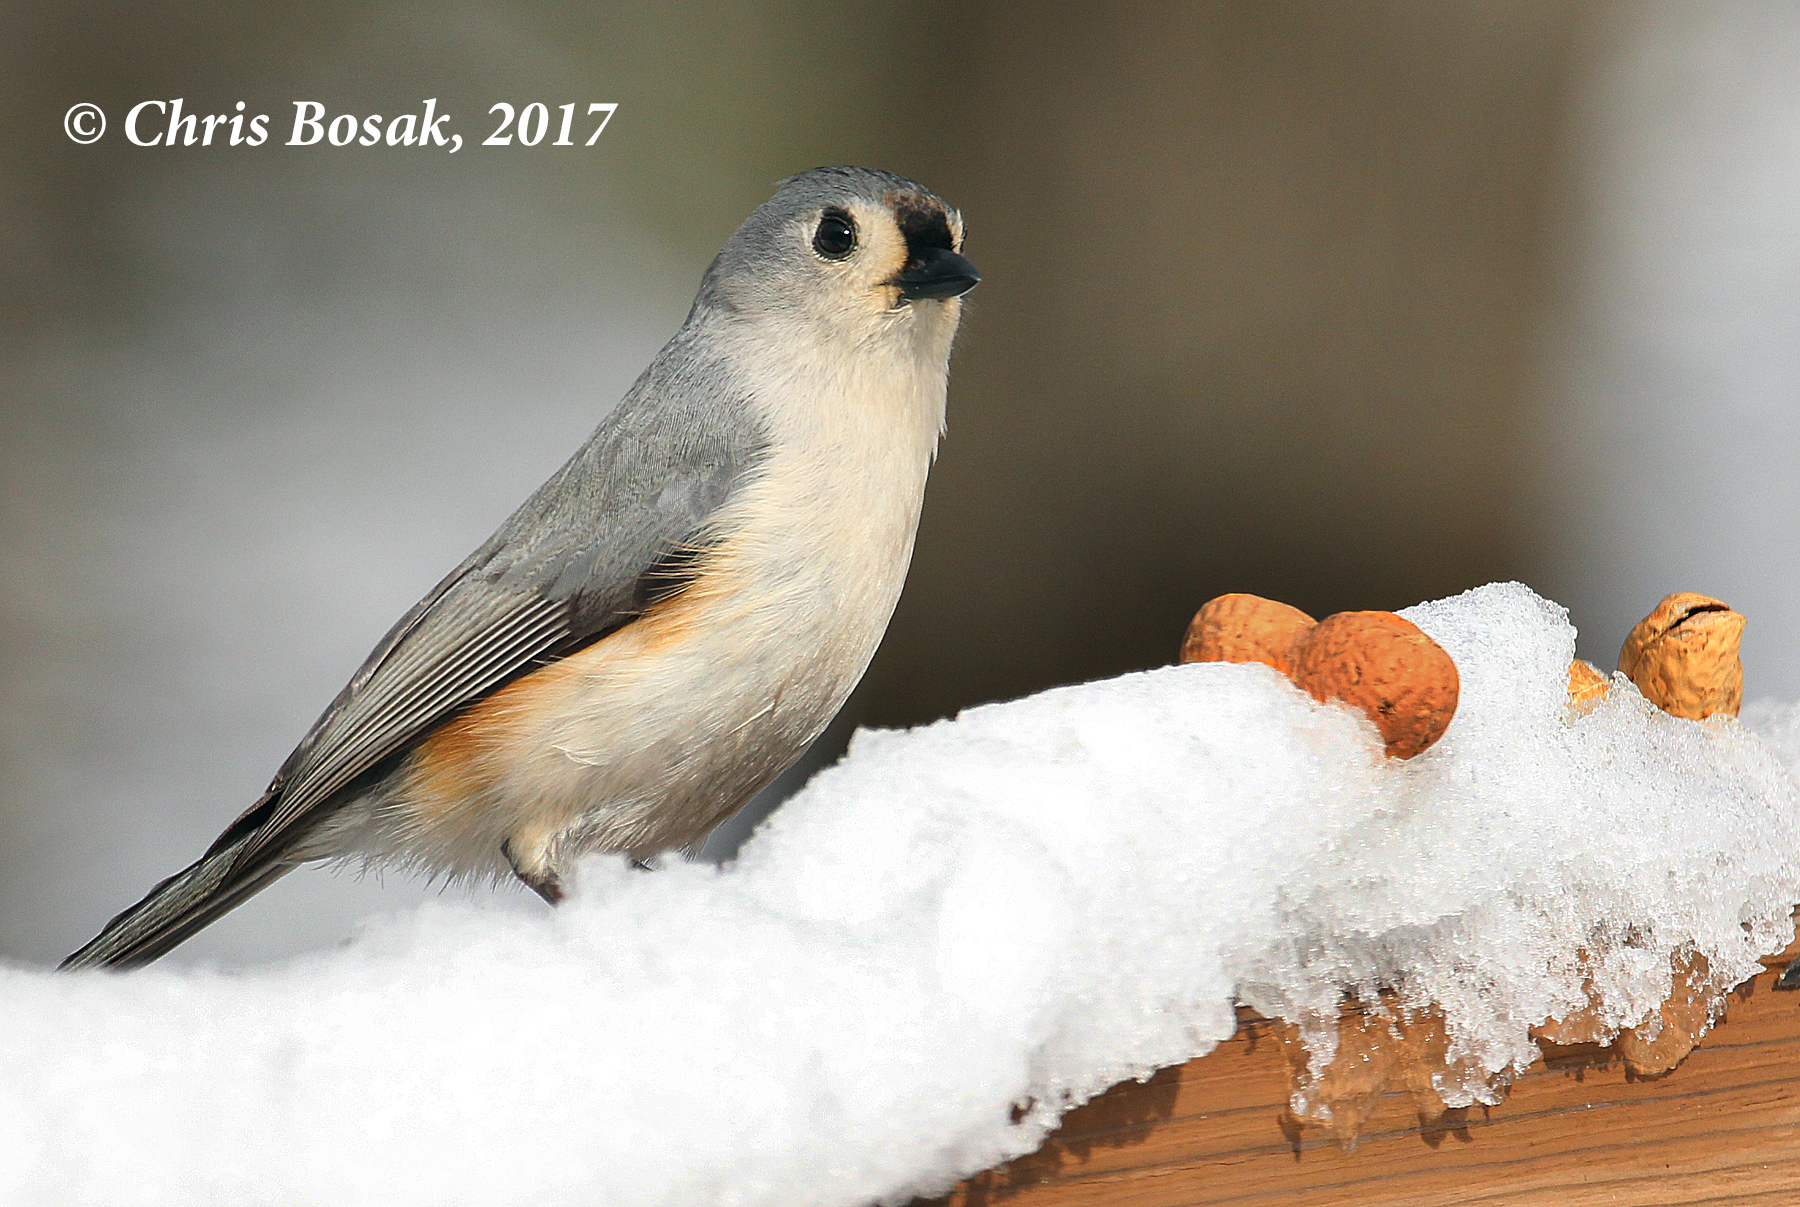 Photo by Chris Bosak  A tufted titmouse contemplates grabbing a peanut from a deck railing following a snowstorm in Danbury, Conn., Feb. 2017.